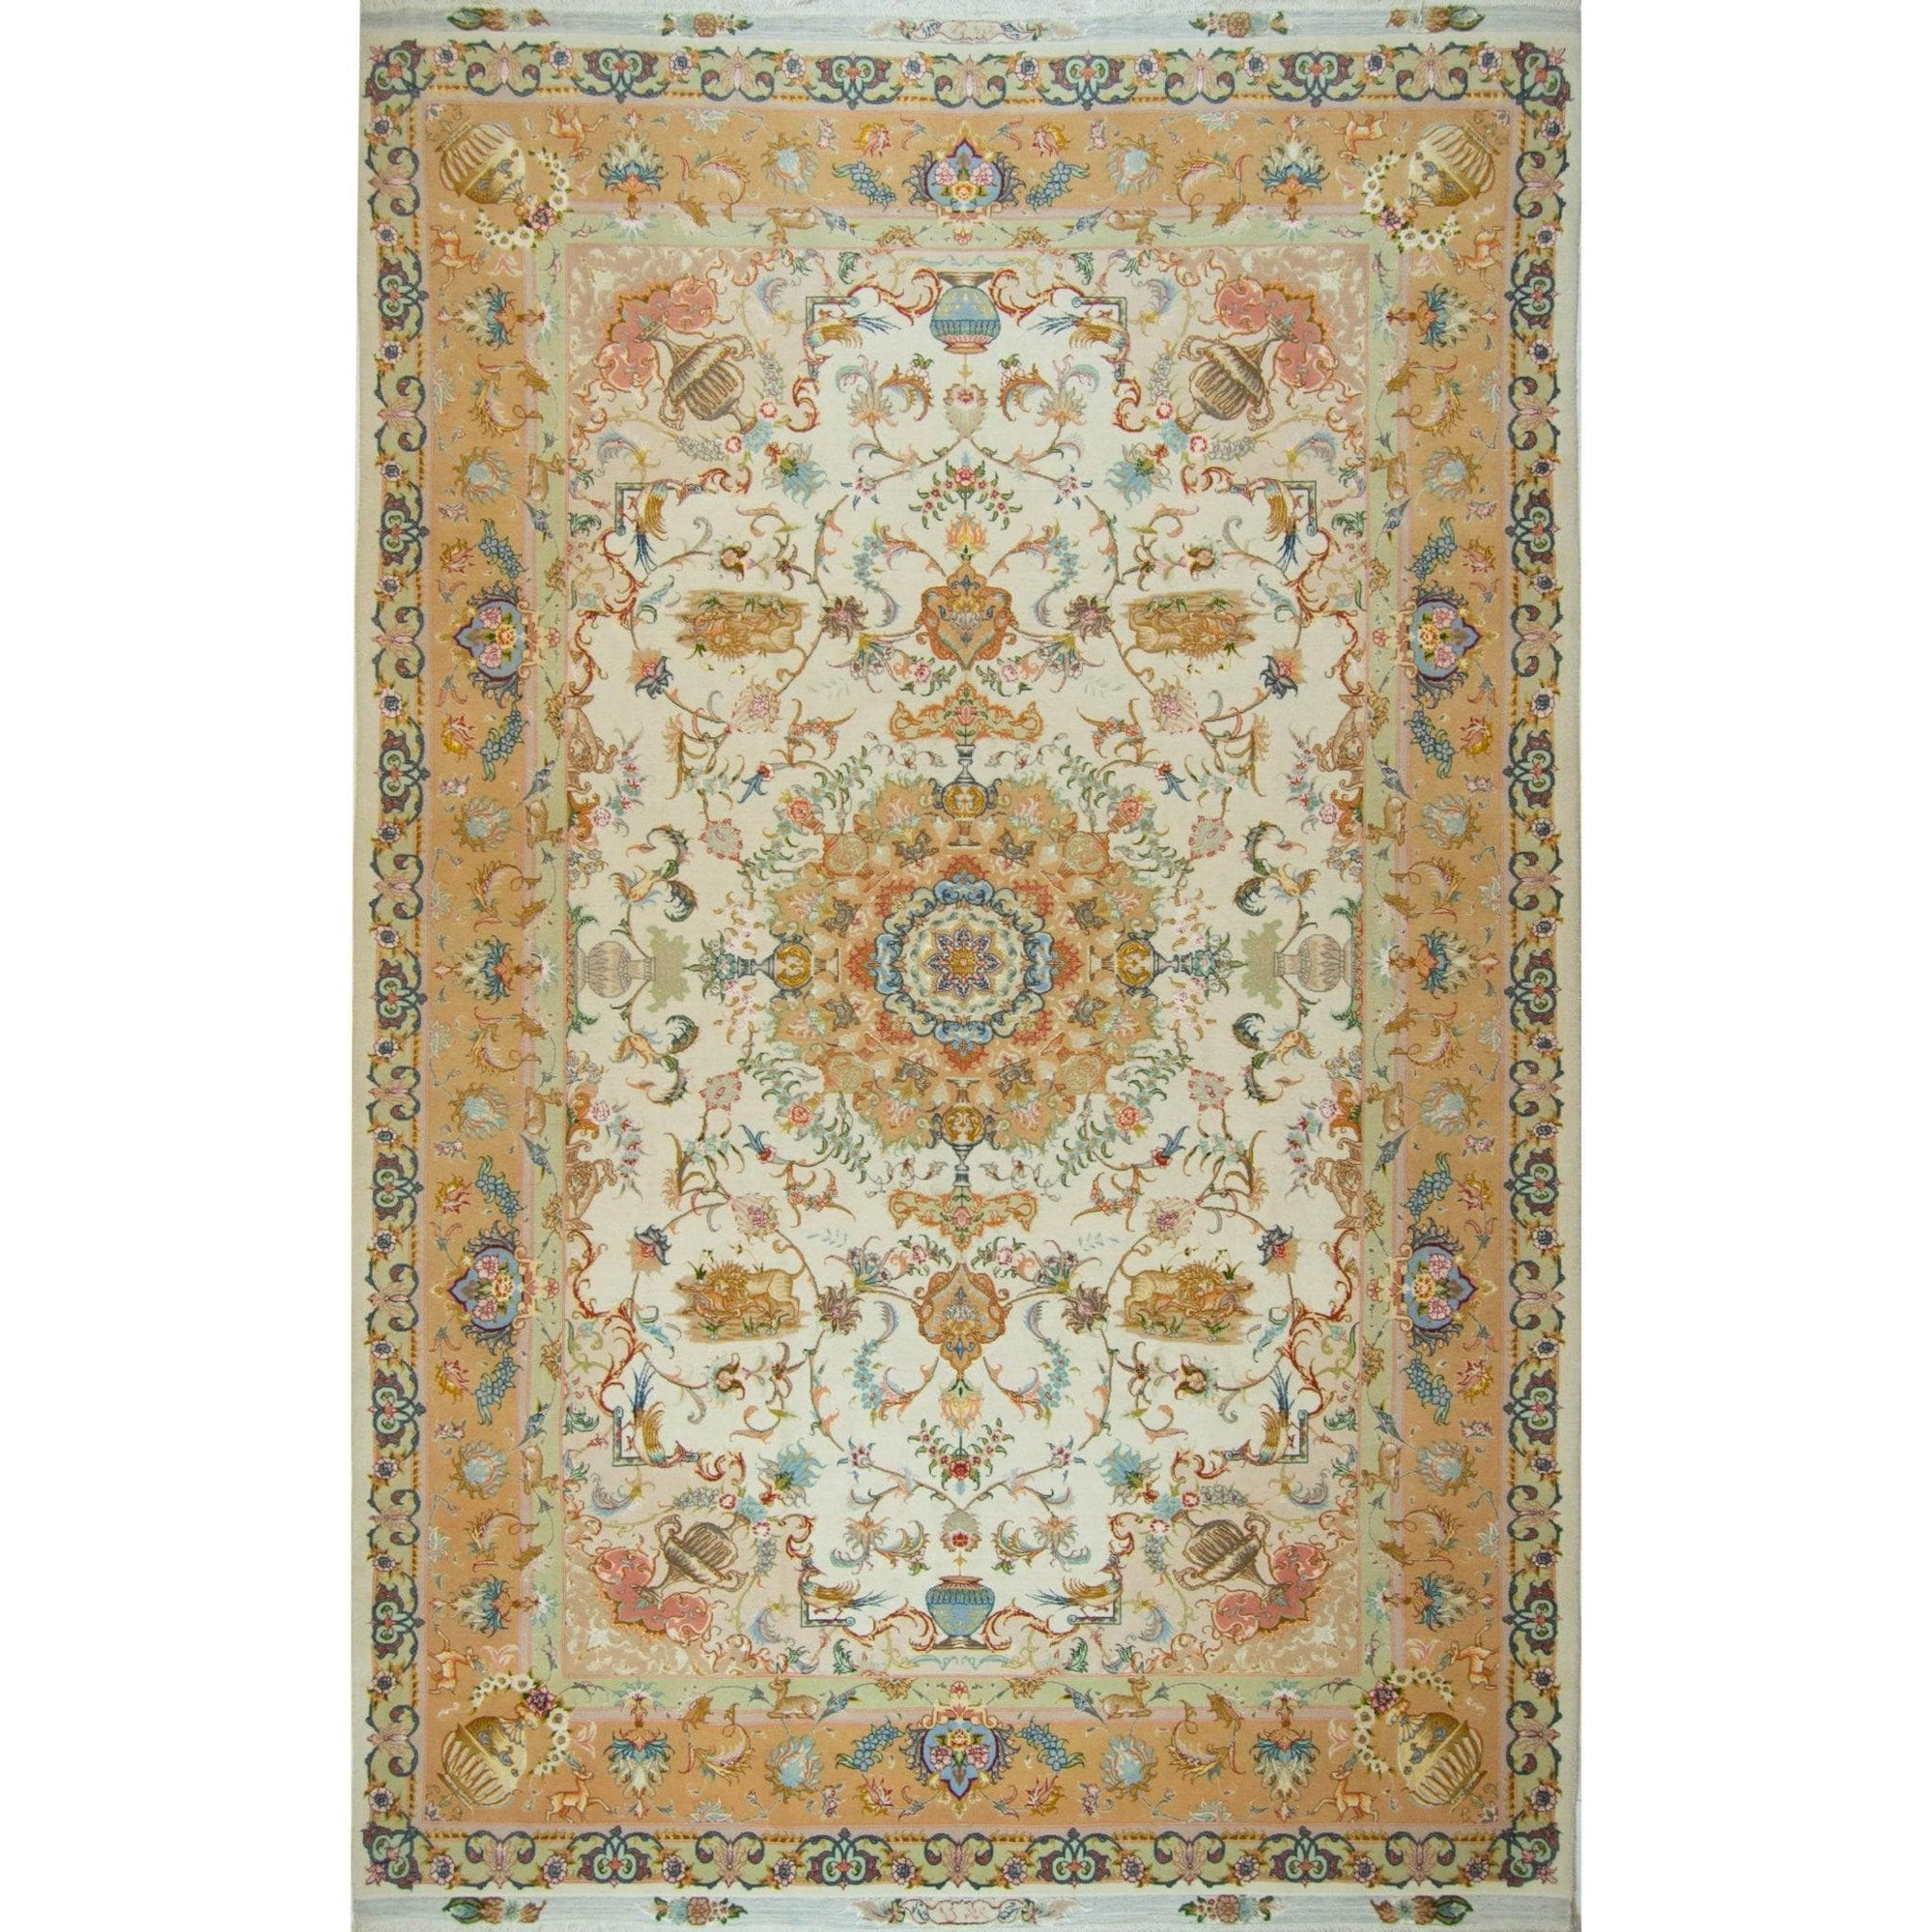 Super Fine Hand-knotted Wool and Silk Persian Rug ( SINGED ) Persian-Rug | House-of-Haghi | NewMarket | Auckland | NZ | Handmade Persian Rugs | Hand Knotted Persian Rugs